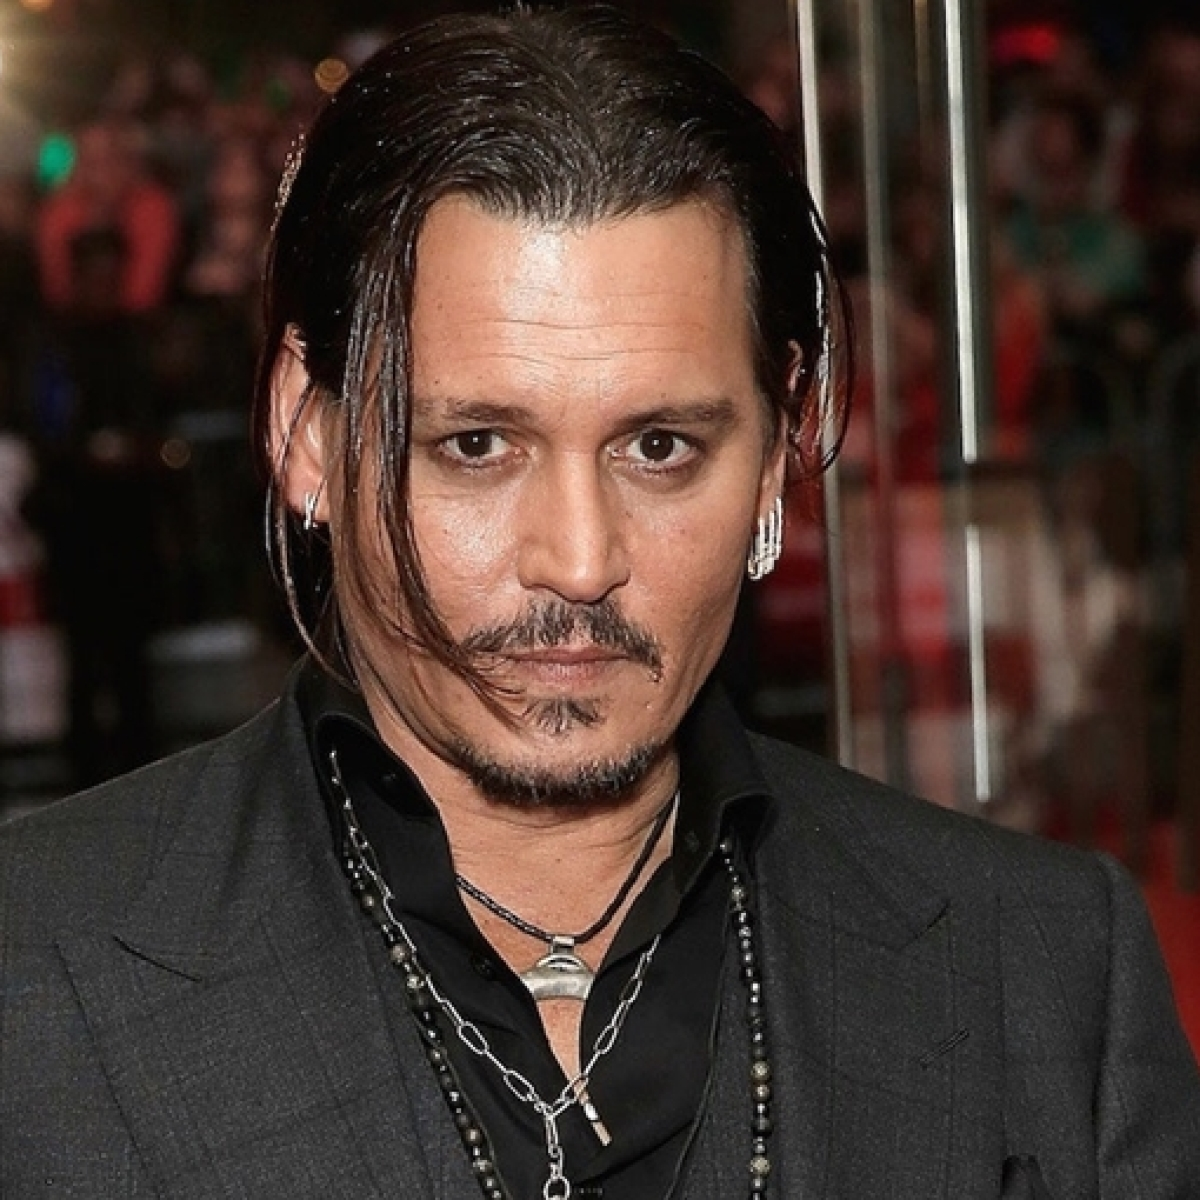 Johnny Depp flaunts a 'bra' made out of napkins amid quarantine; fans call it a 'masterpiece'